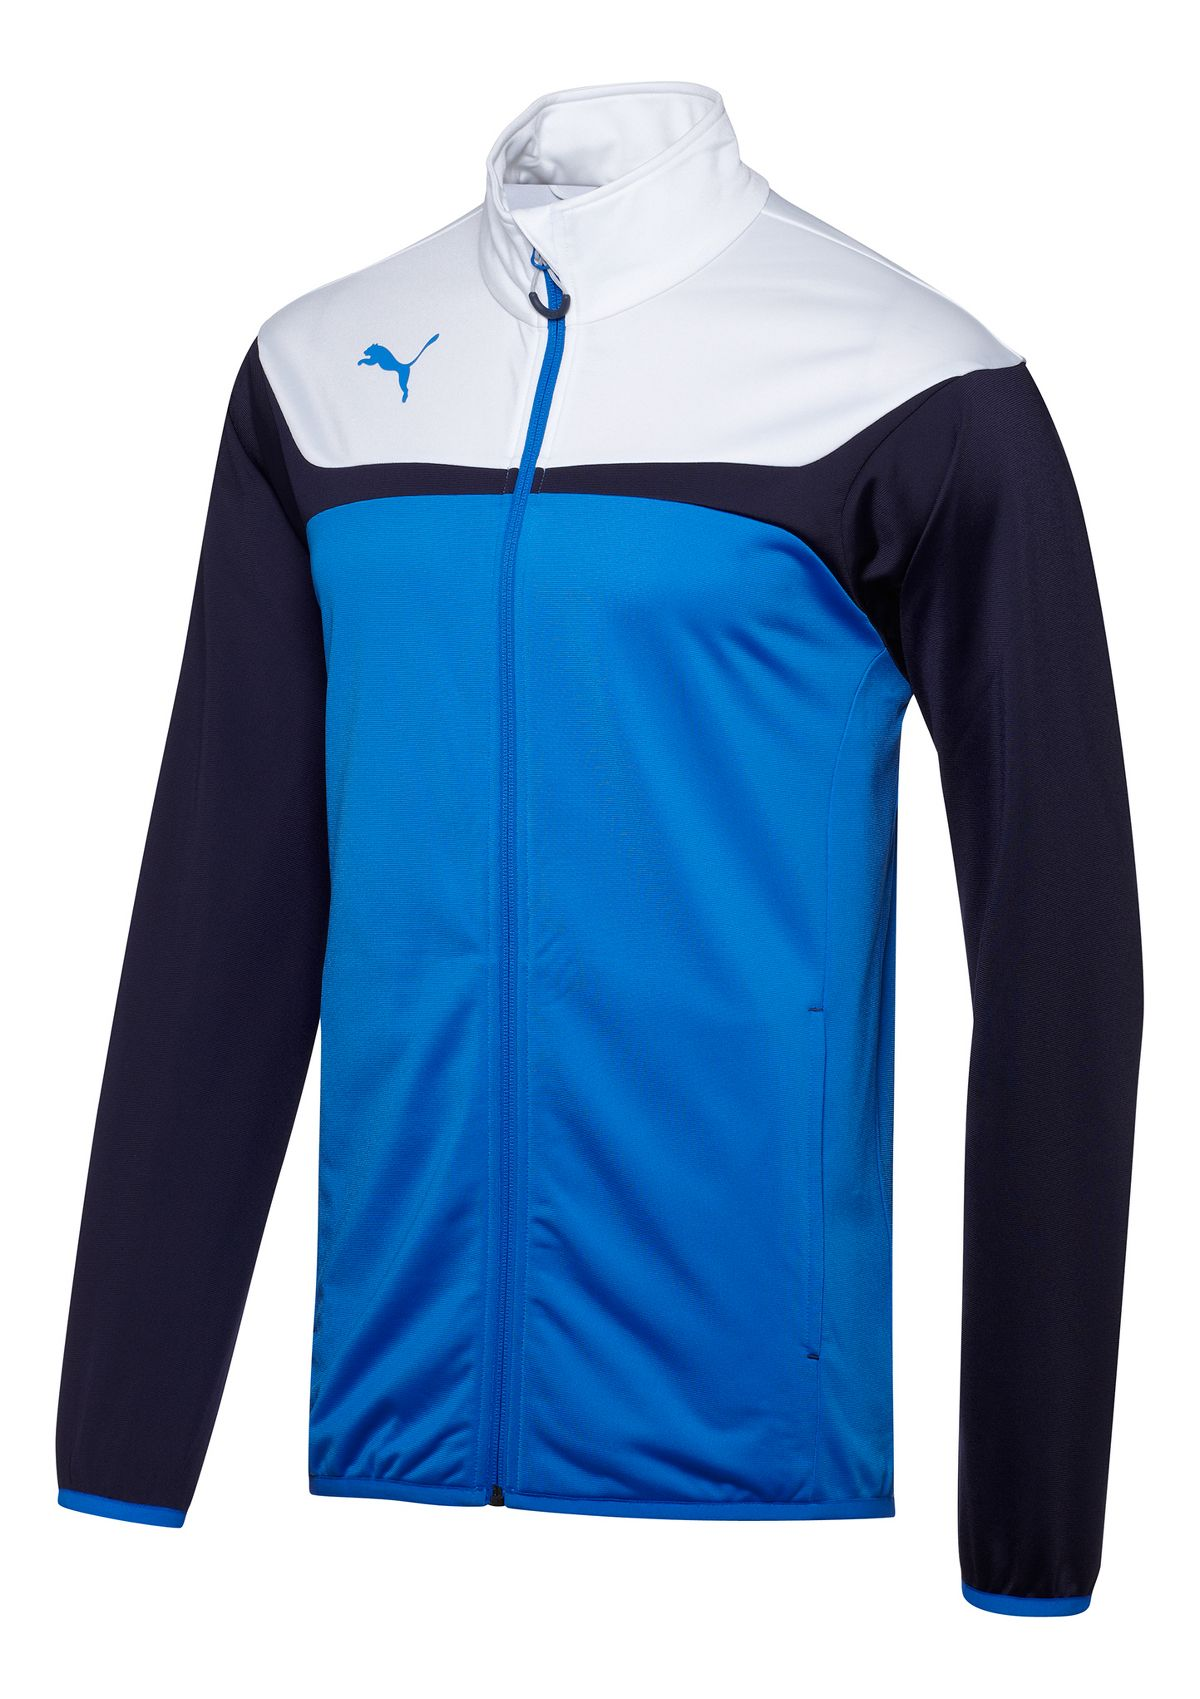 Kids Puma Esito 3 Tricot Warm-Up Unhooded Jackets At Road Runner Sports